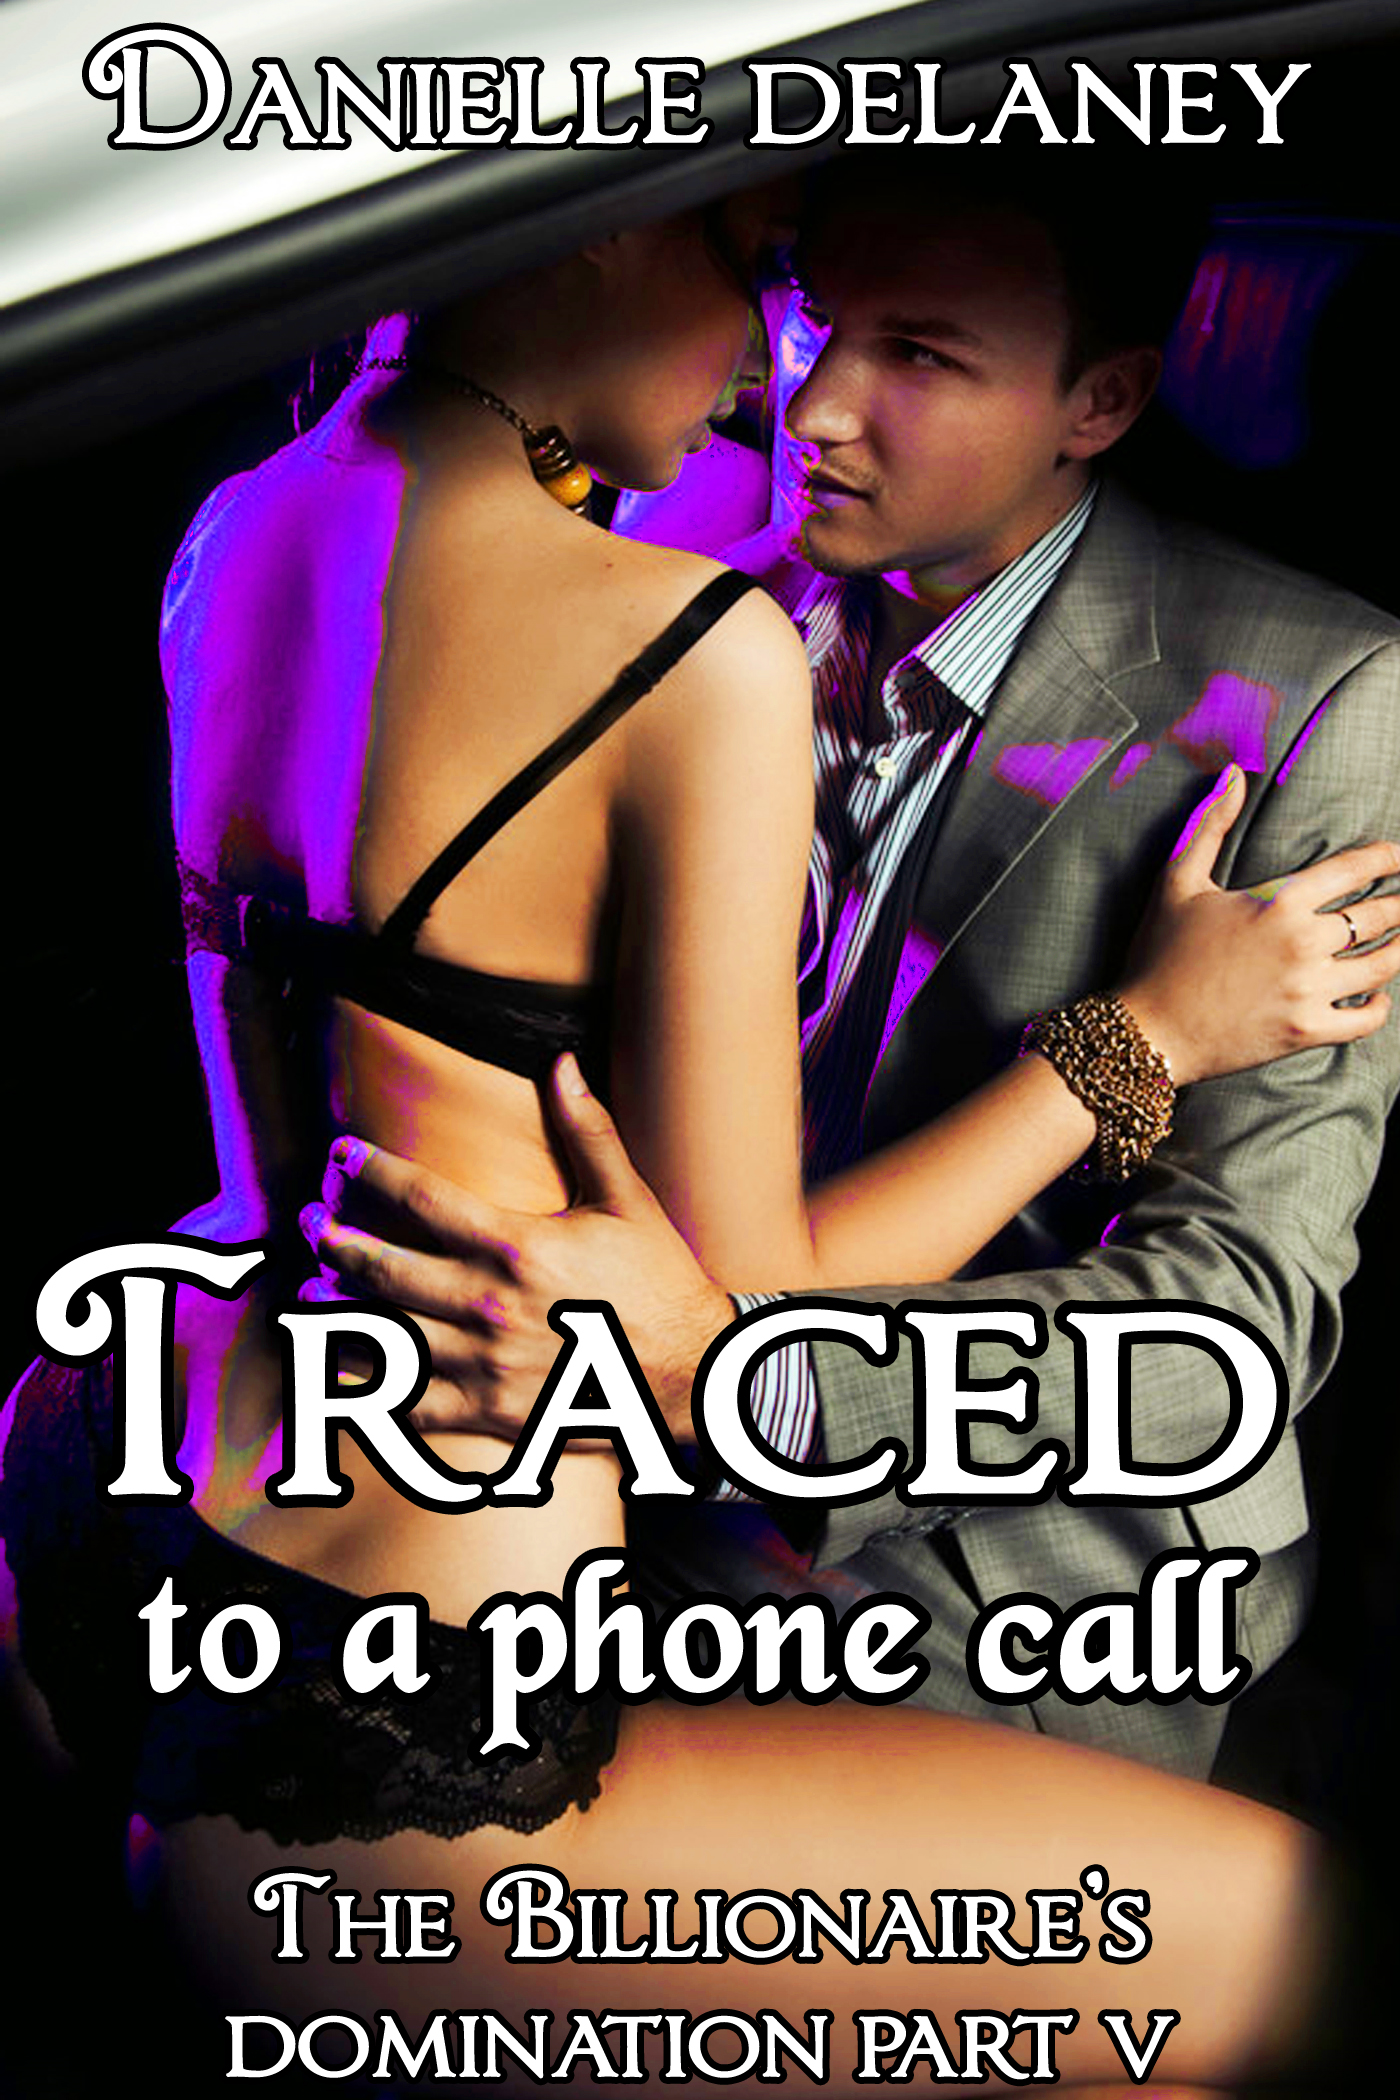 Traced to a Phone Call (The Billionaire's Domination Part 5) (BDSM Erotic Romance)